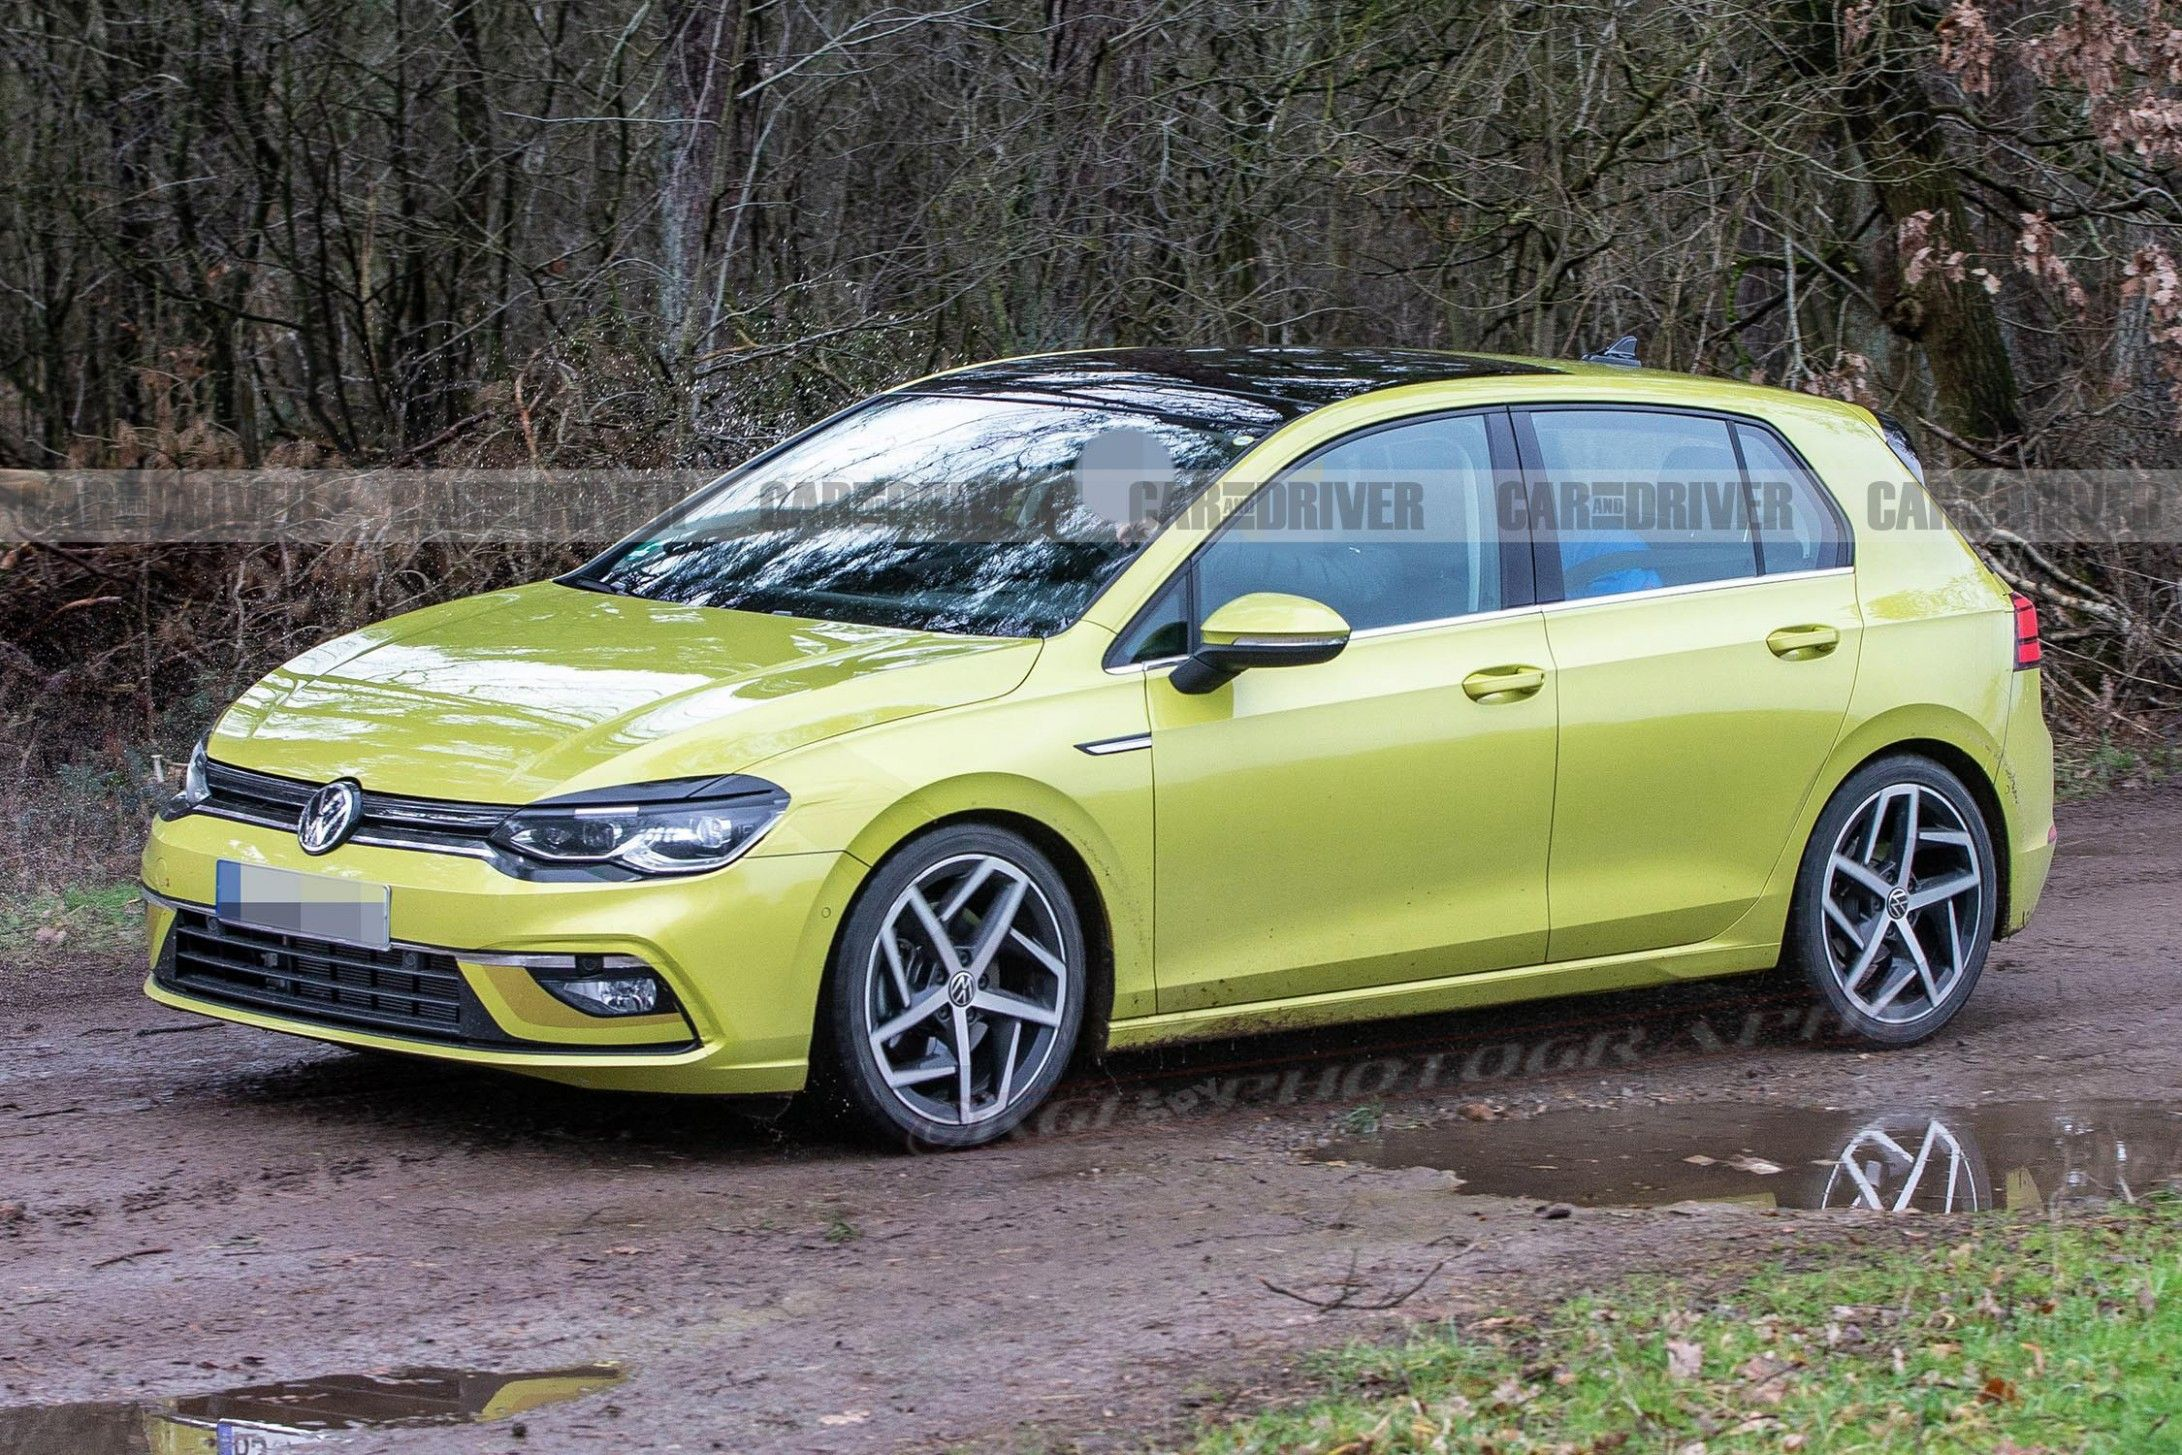 2021 Volkswagen Scirocco Price and Review